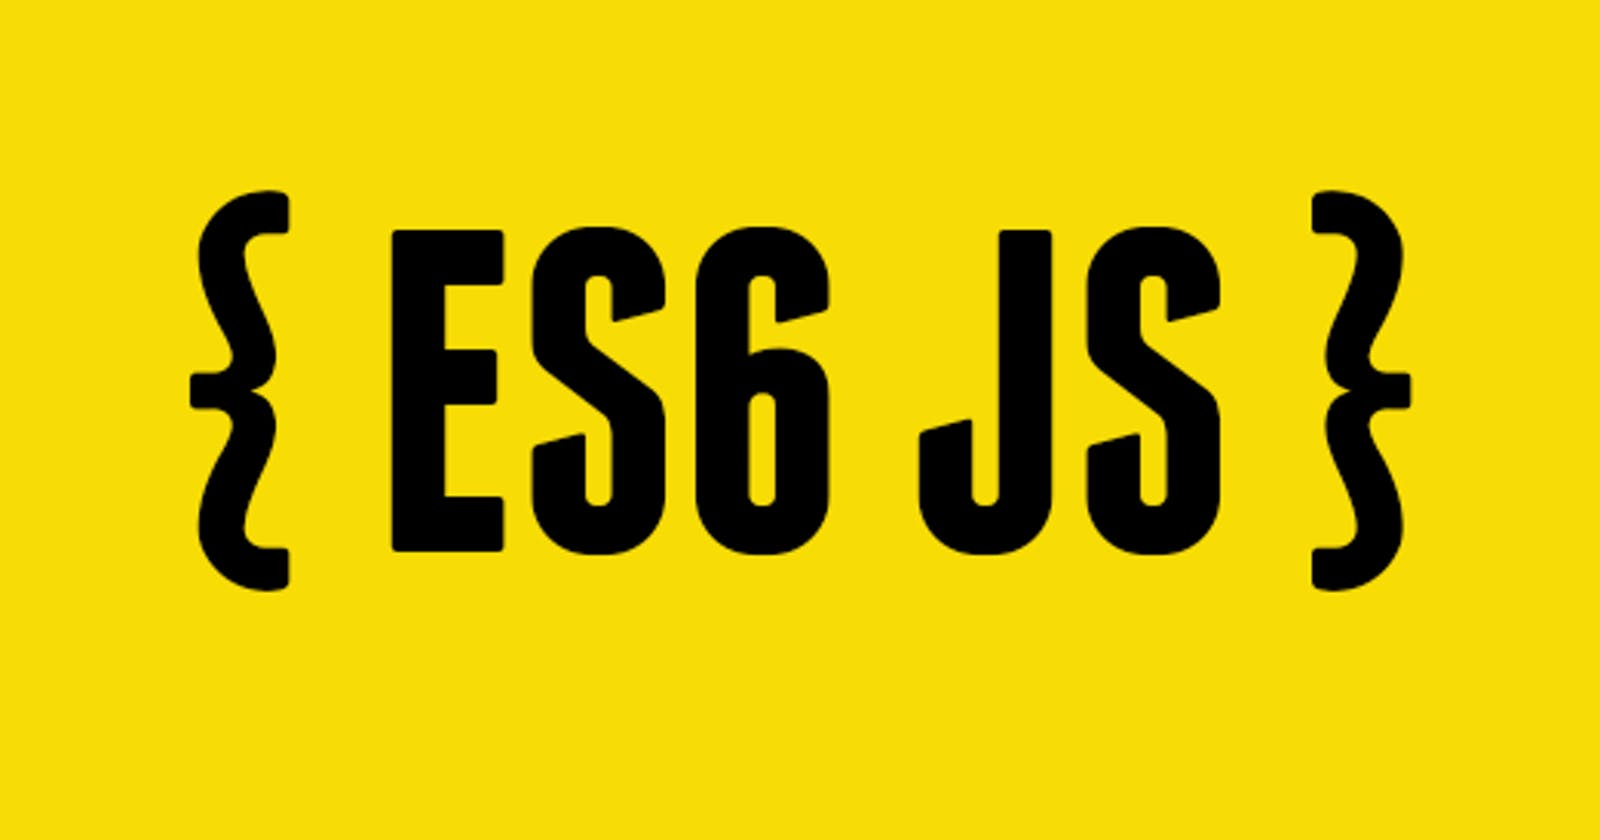 Get started with Javascript ES6 (Part 1: Block Binding)!